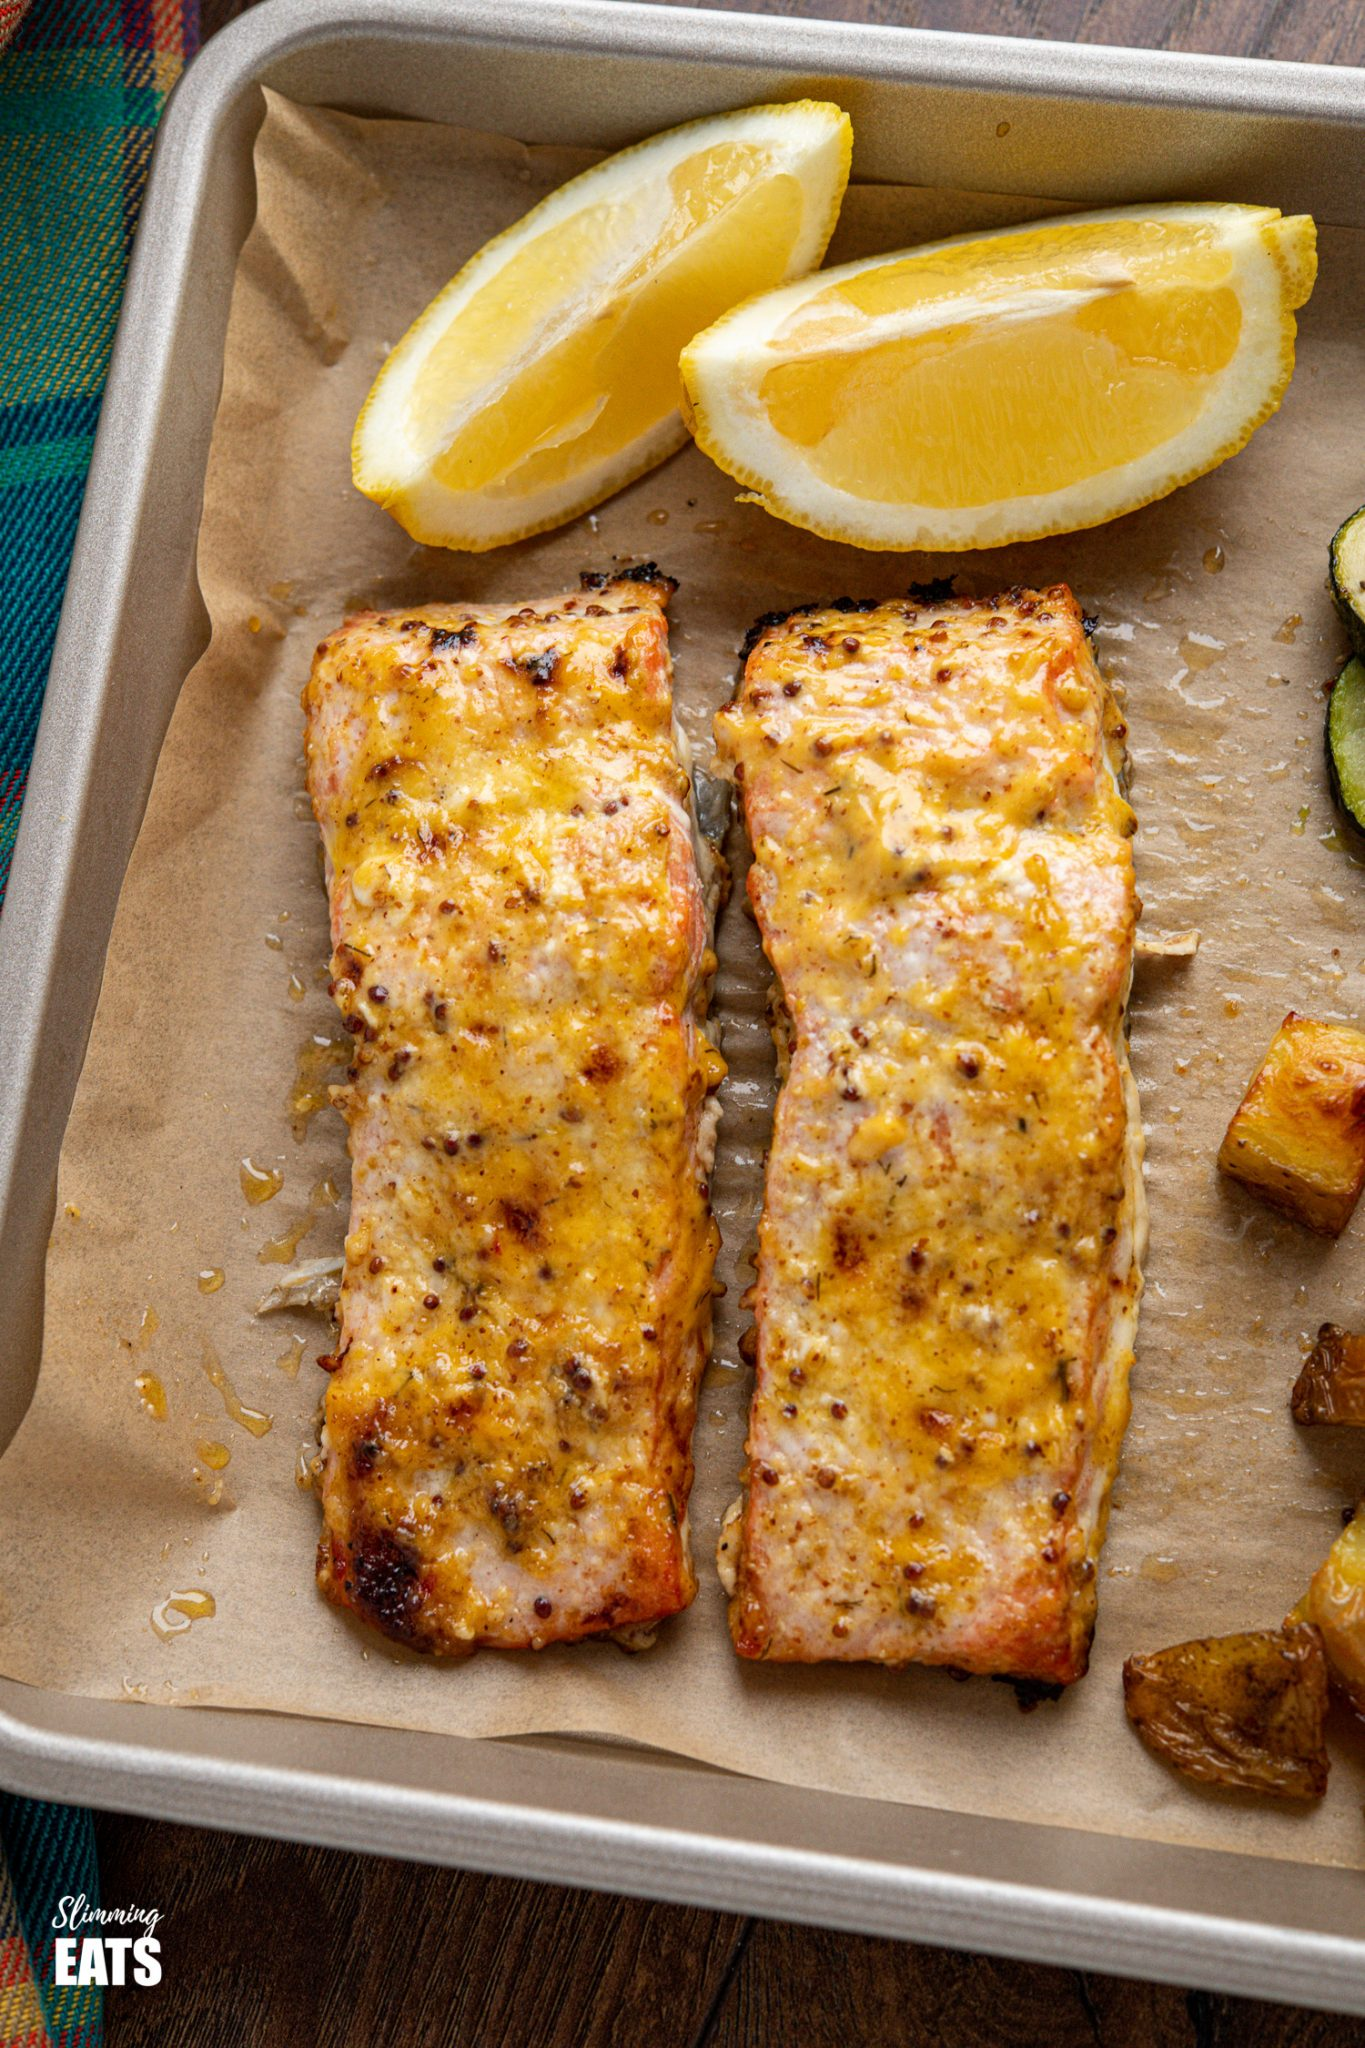 close up of Oven Baked Mustard Salmon Fillets on parchment lined tray with potatoes, zucchini and lemon wedge